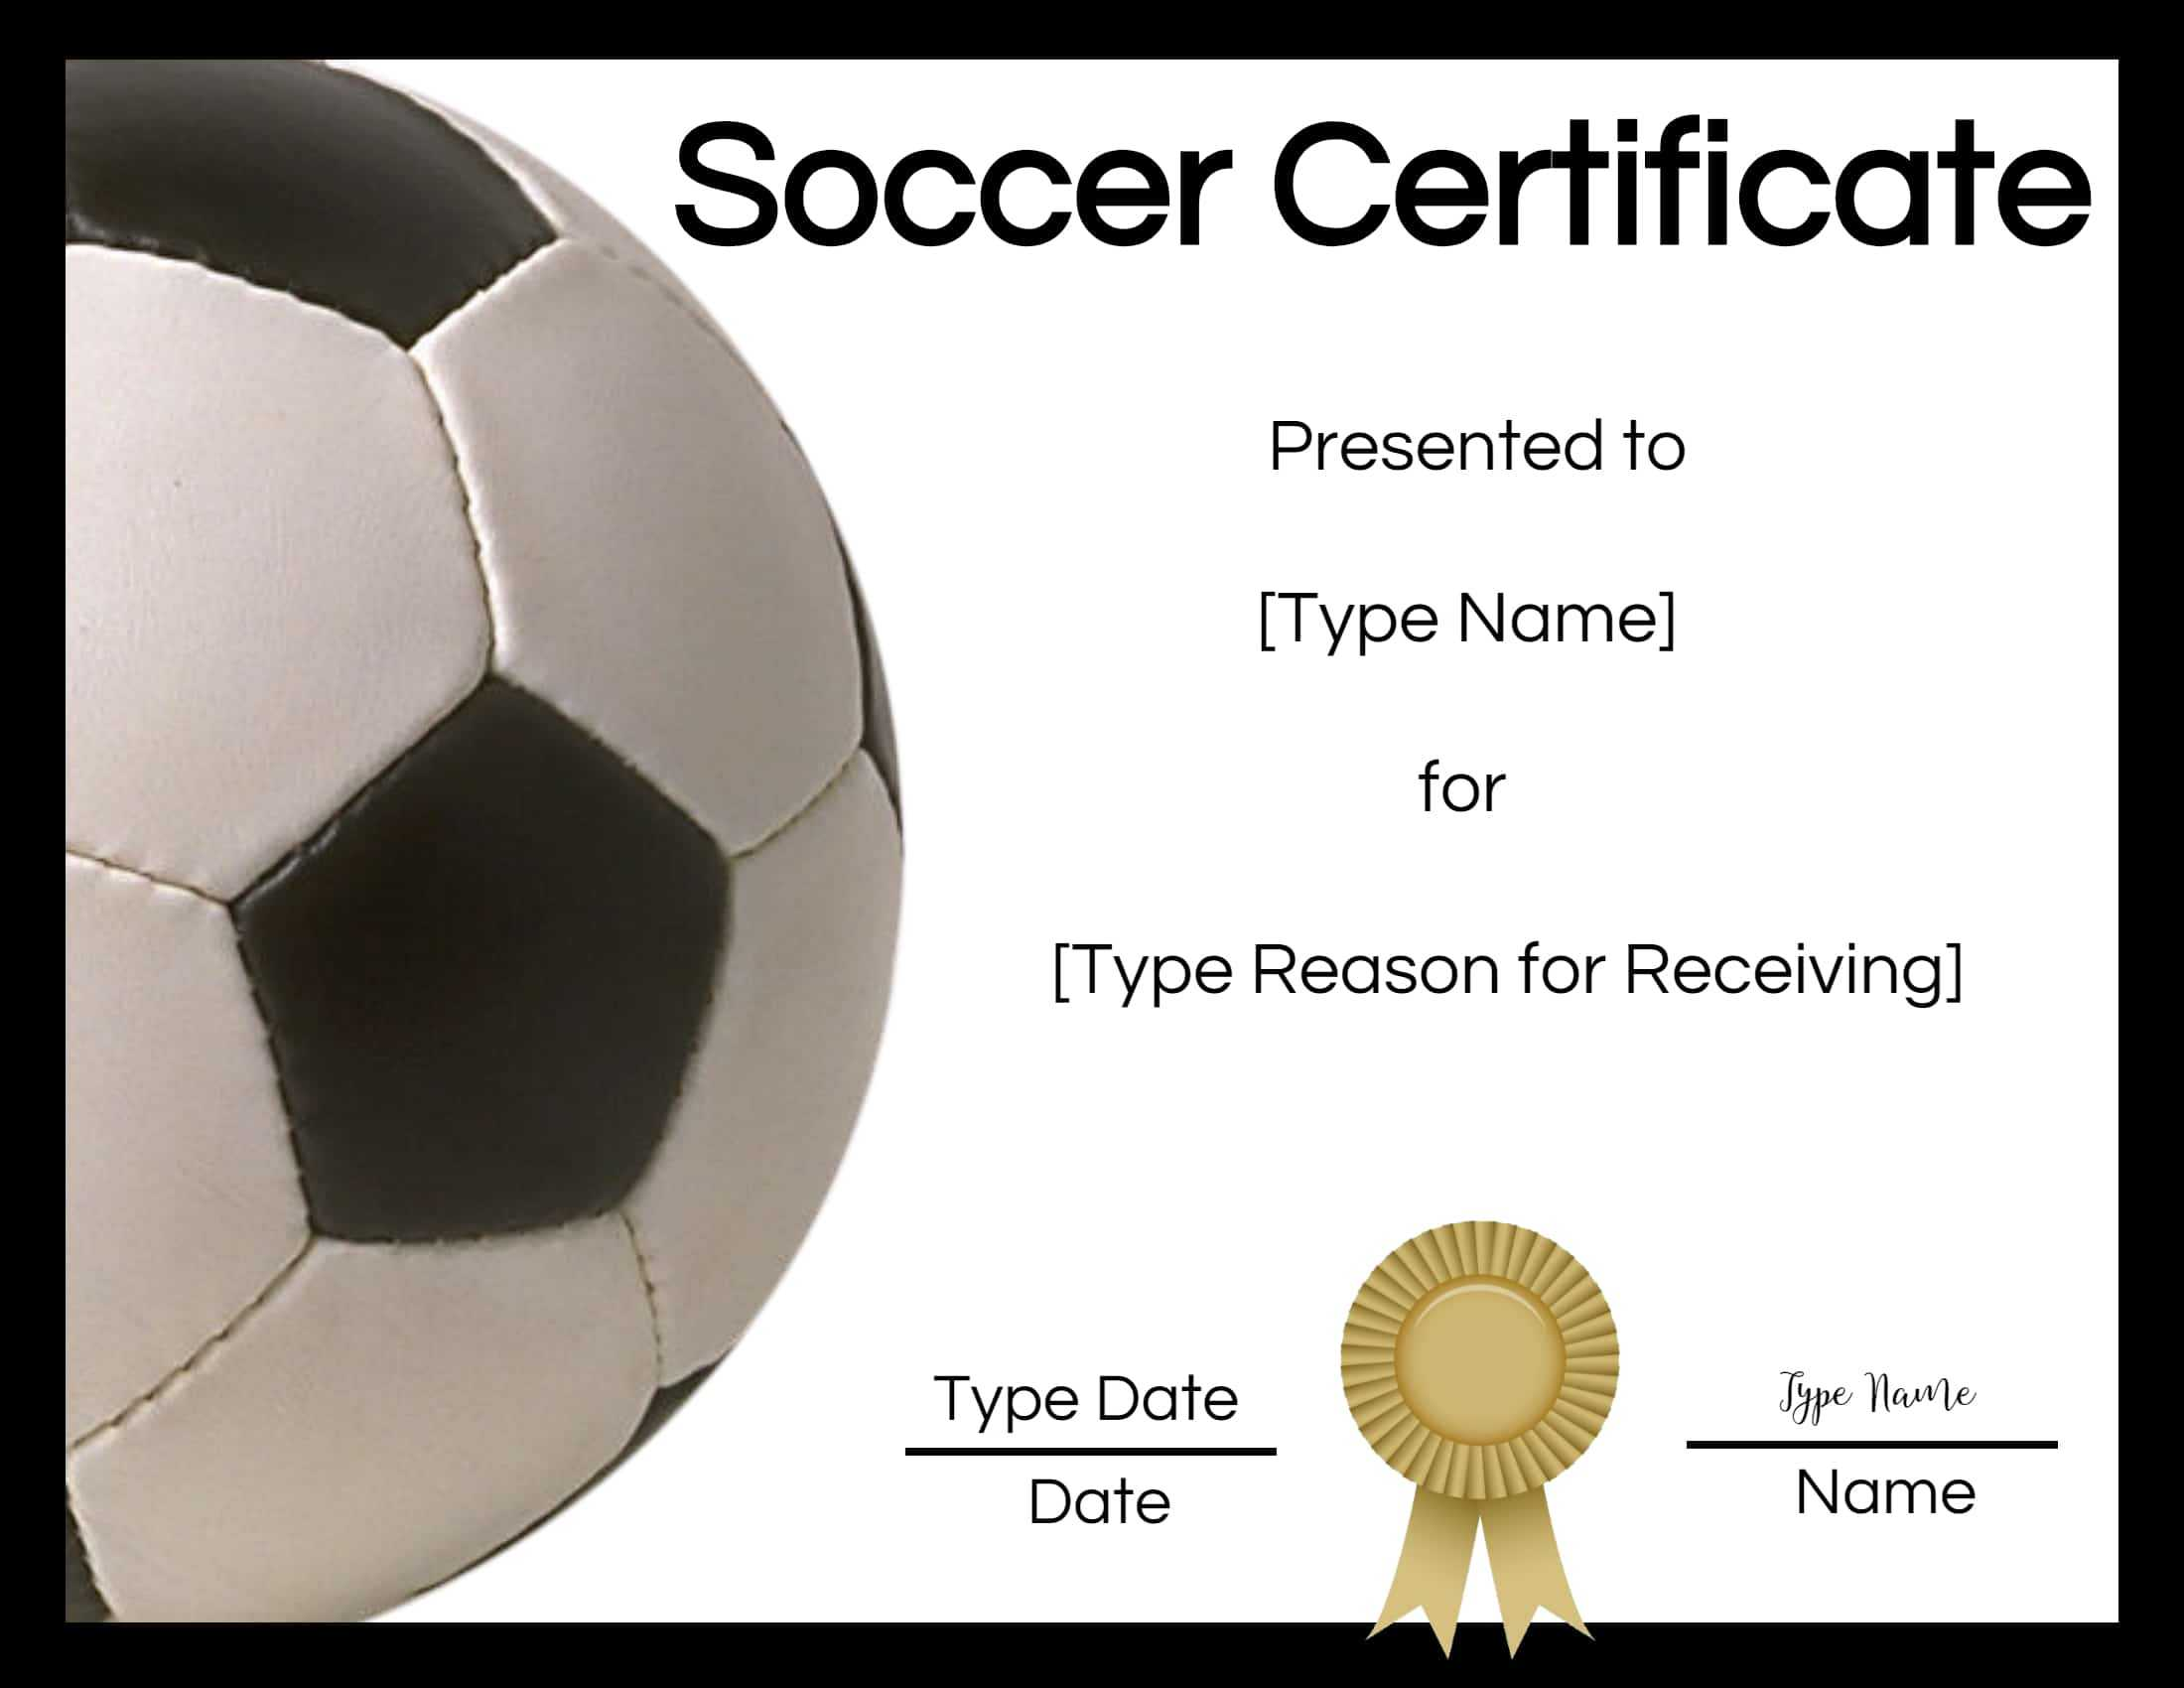 Free Soccer Certificate Maker | Edit Online And Print At Home Inside Soccer Certificate Template